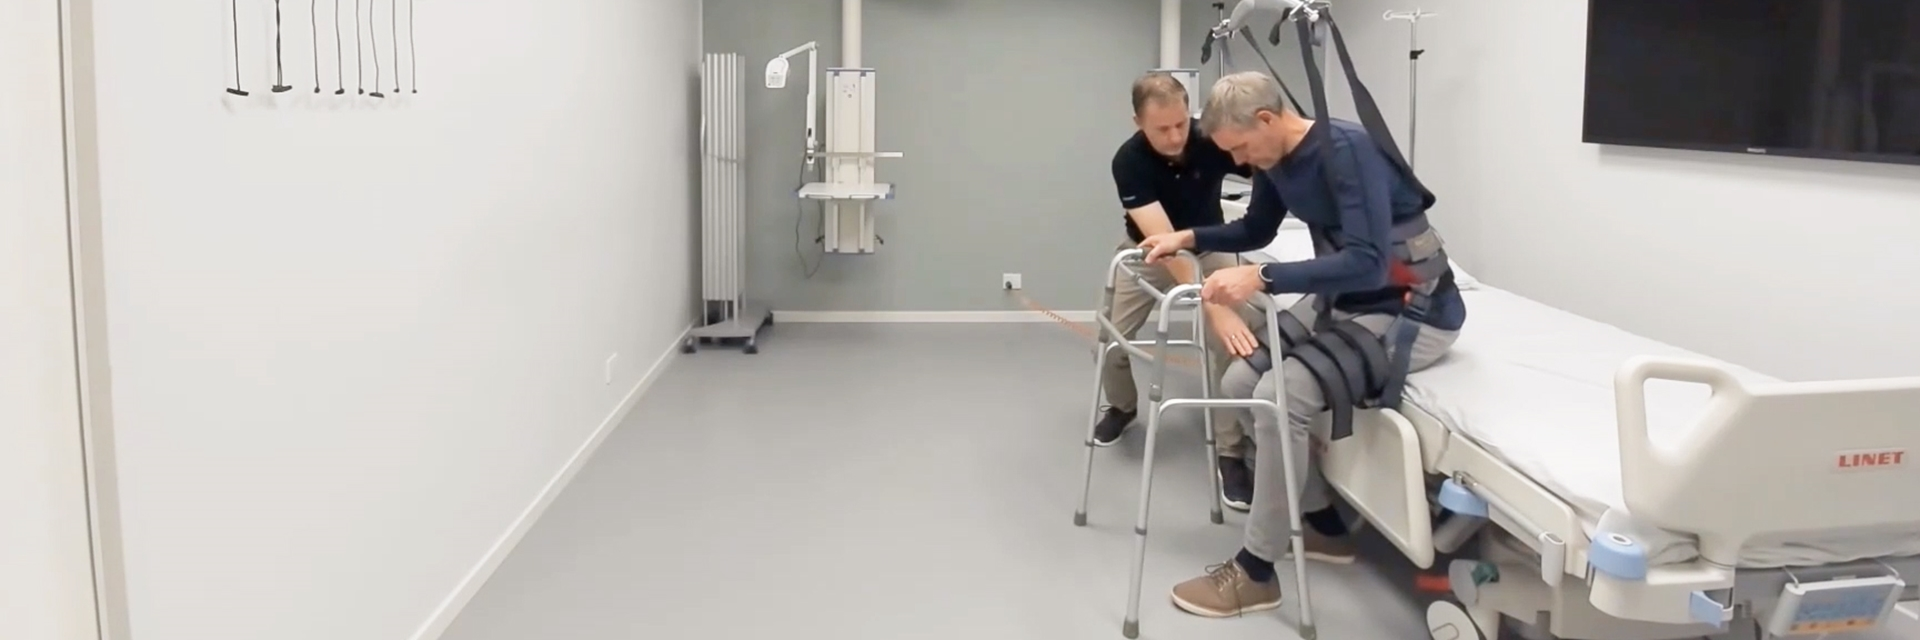 Trainer module - Positioning lock - Sit to stand exercise